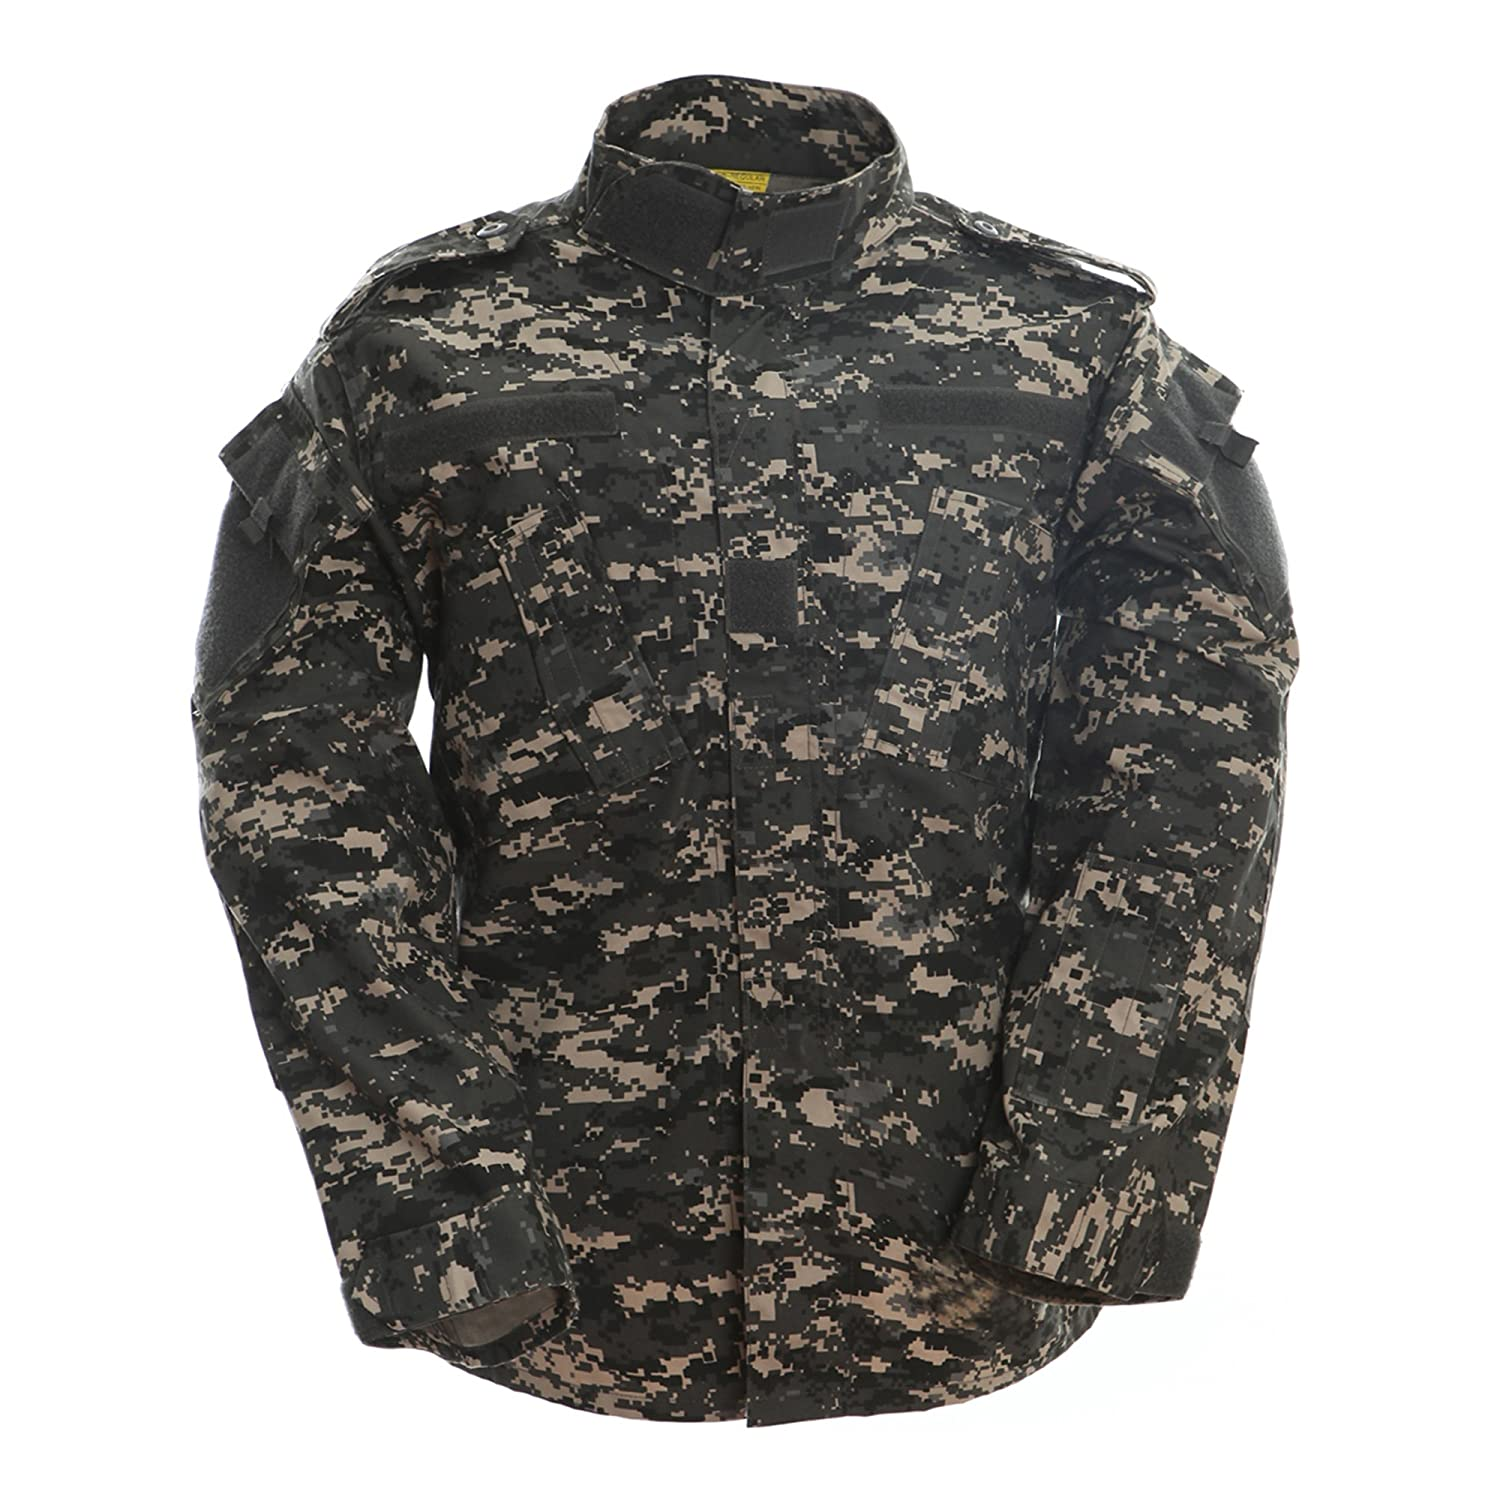 TACVASEN Men's Army Military Camouflage Digital Combat Uniform Shirt Top Jacket Blouse FEDCS-35